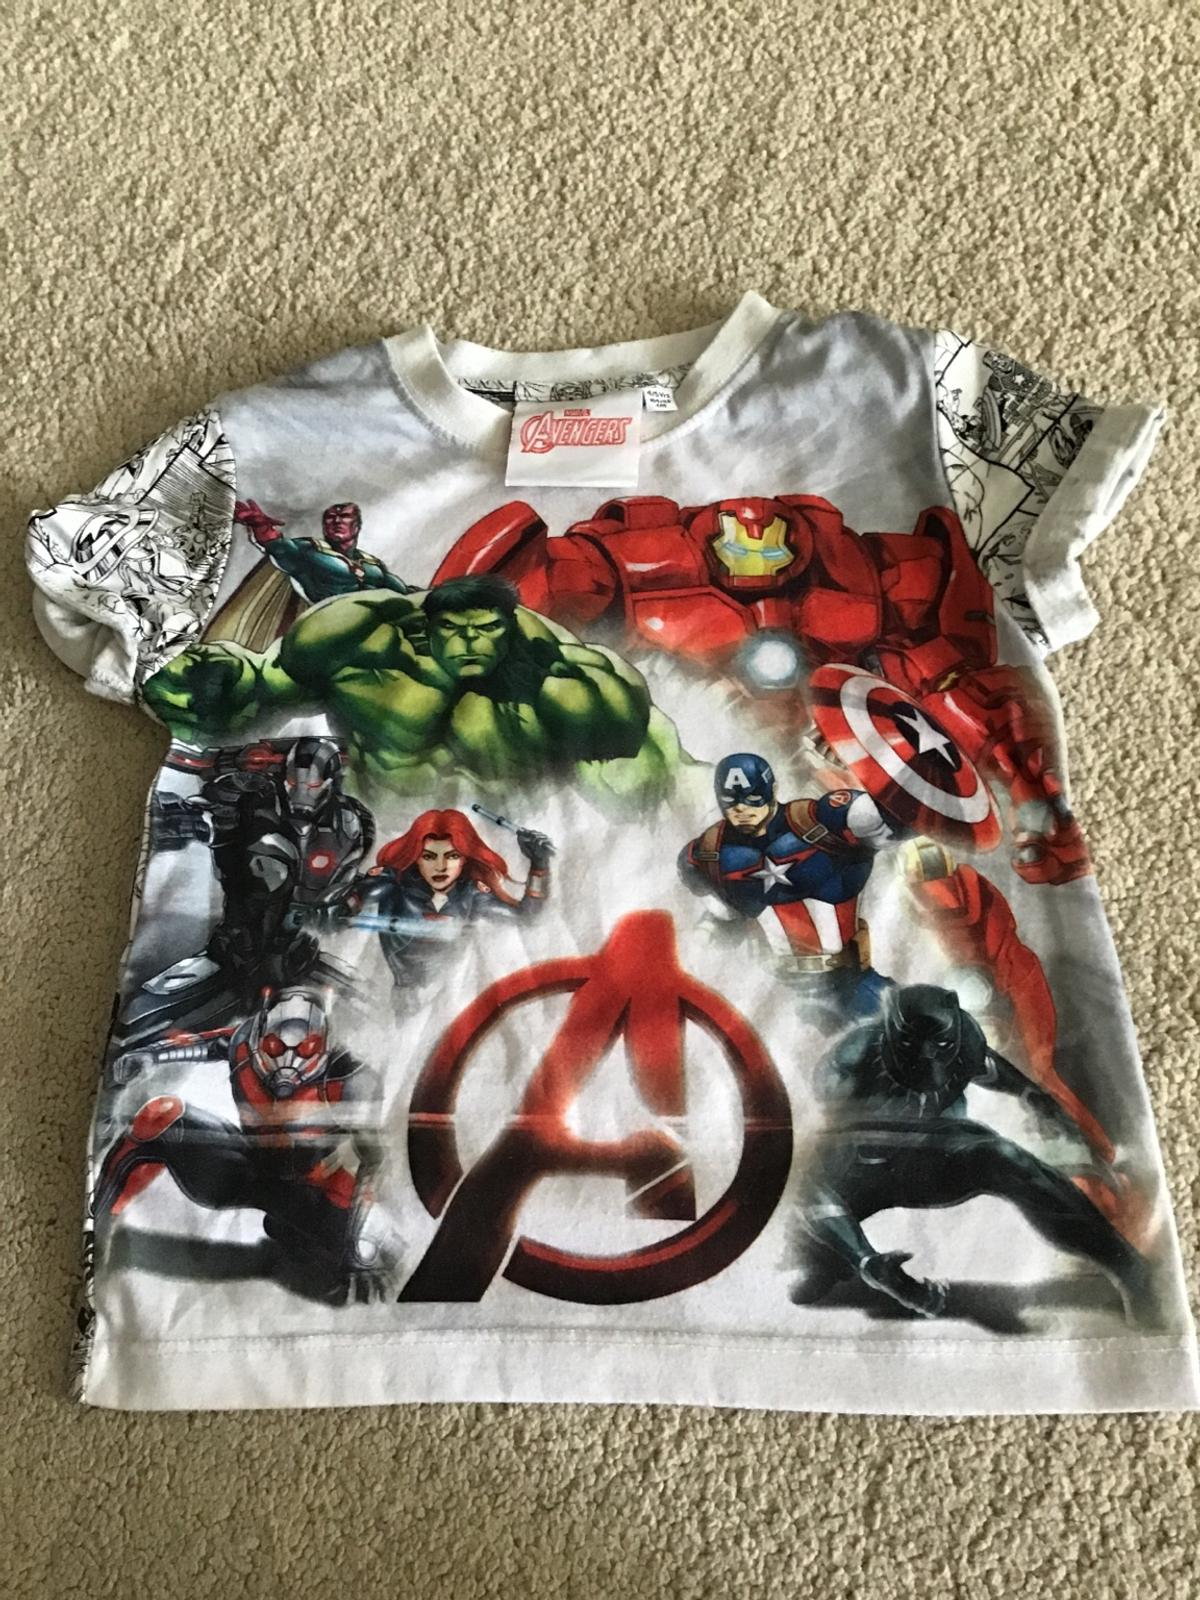 Super heroes on the front of the t-shirt  PAYMENT ONLY BY PAYPAL ONLY METHOD I WILL ACCEPT ITEM TO BE COLLECTED AFTER LOCKDOWN OR CAN BR PAID BY PAYPAL AND LEFT IN A BAG IN MY GARDEN READY FOR COLLECTION